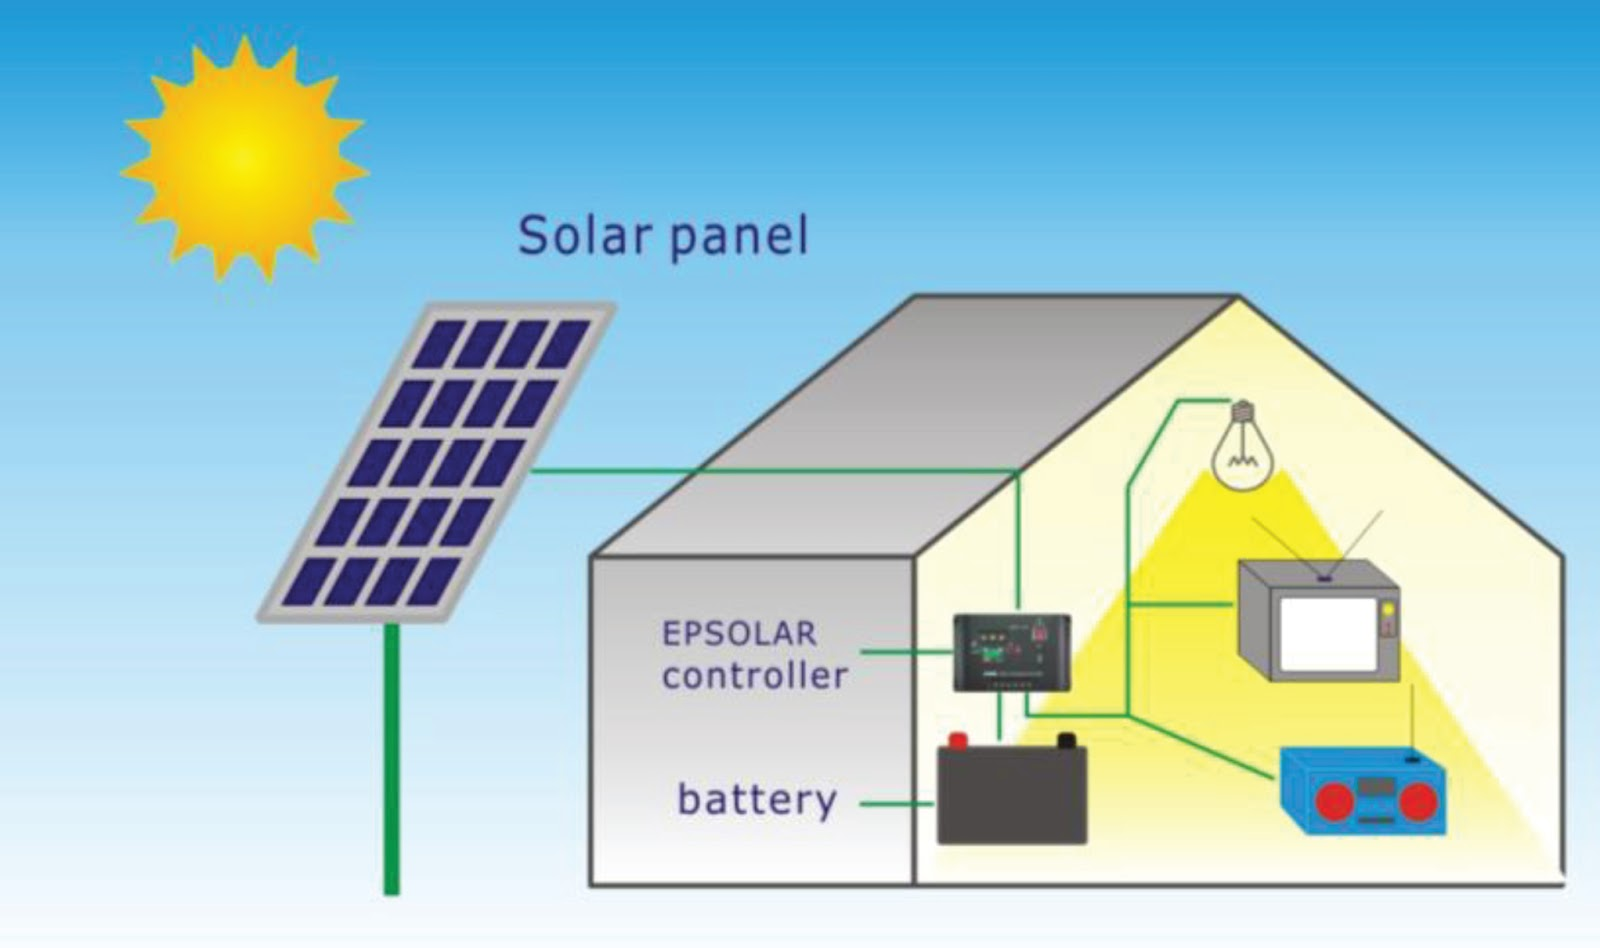 How A Solar Panel Works Diagram Schematics Wiring Diagrams Panels Work 01 14 Jual Cell Listrik Tenaga Graphic Of System